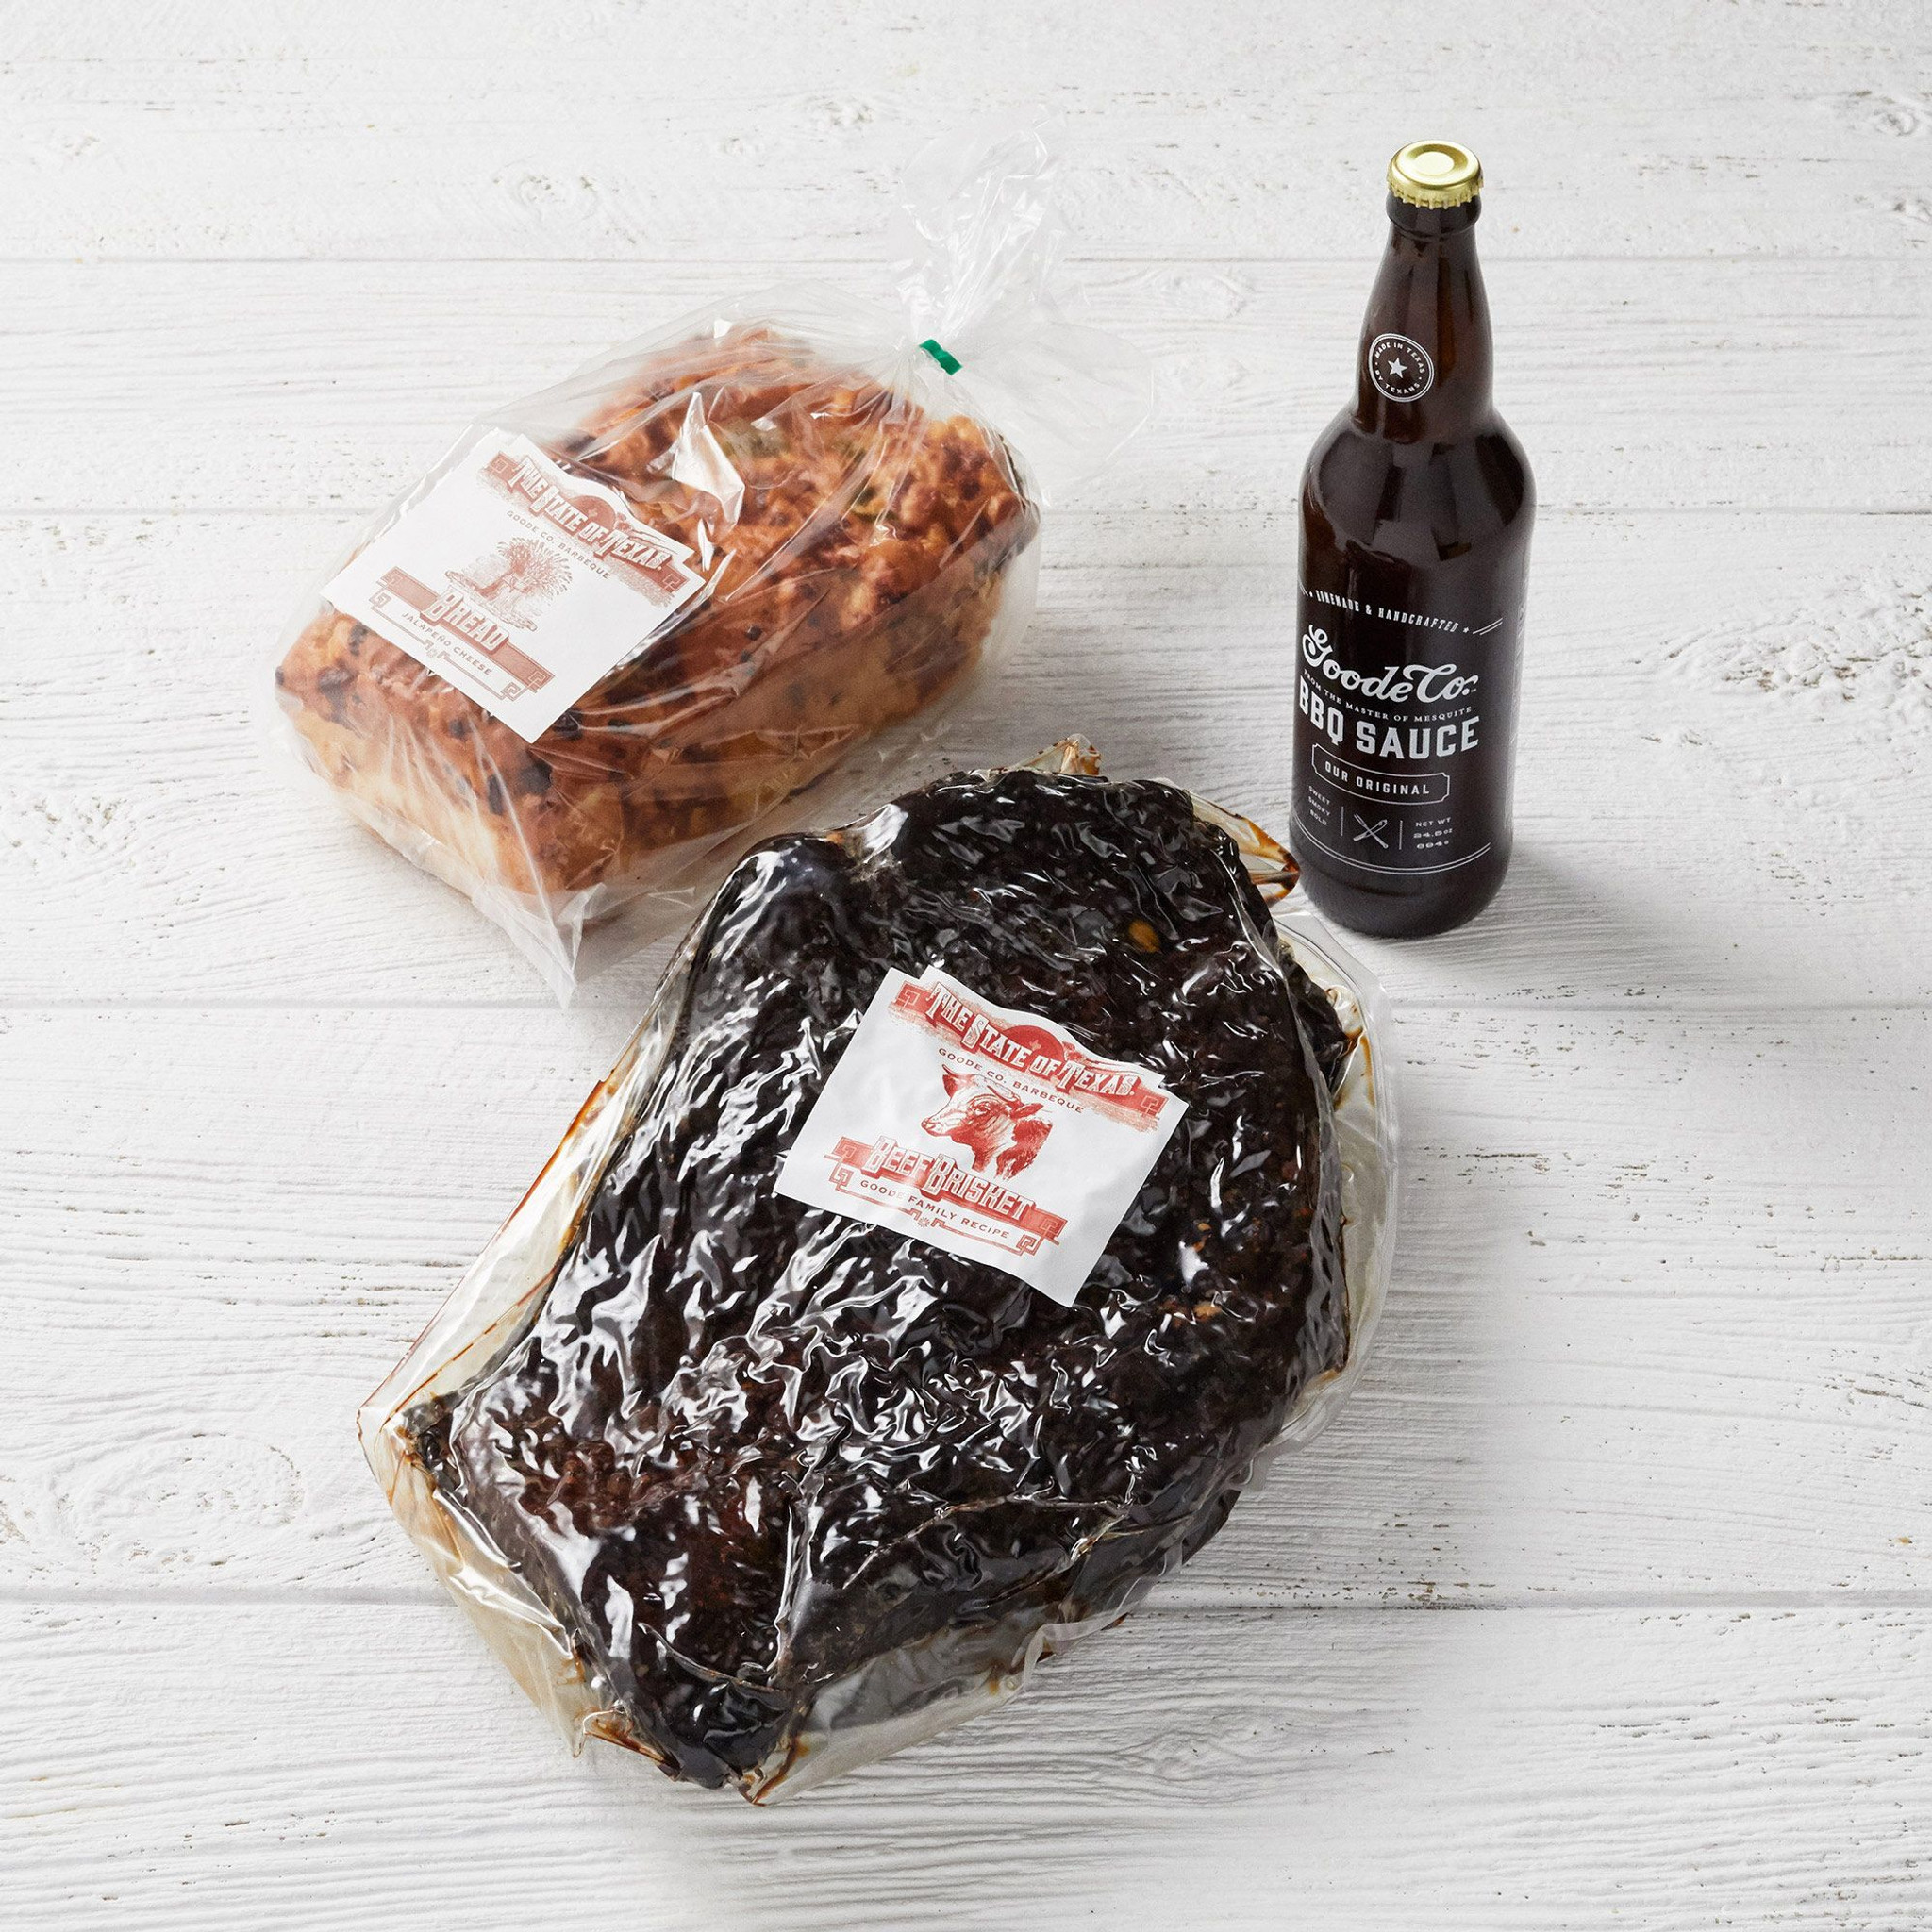 Vacuum-sealed packaging for Goode Co's Classic Mesquite Smoked Brisket with a glass bottle of BBQ sauce, and a loaf of jalapeño cheese bread.